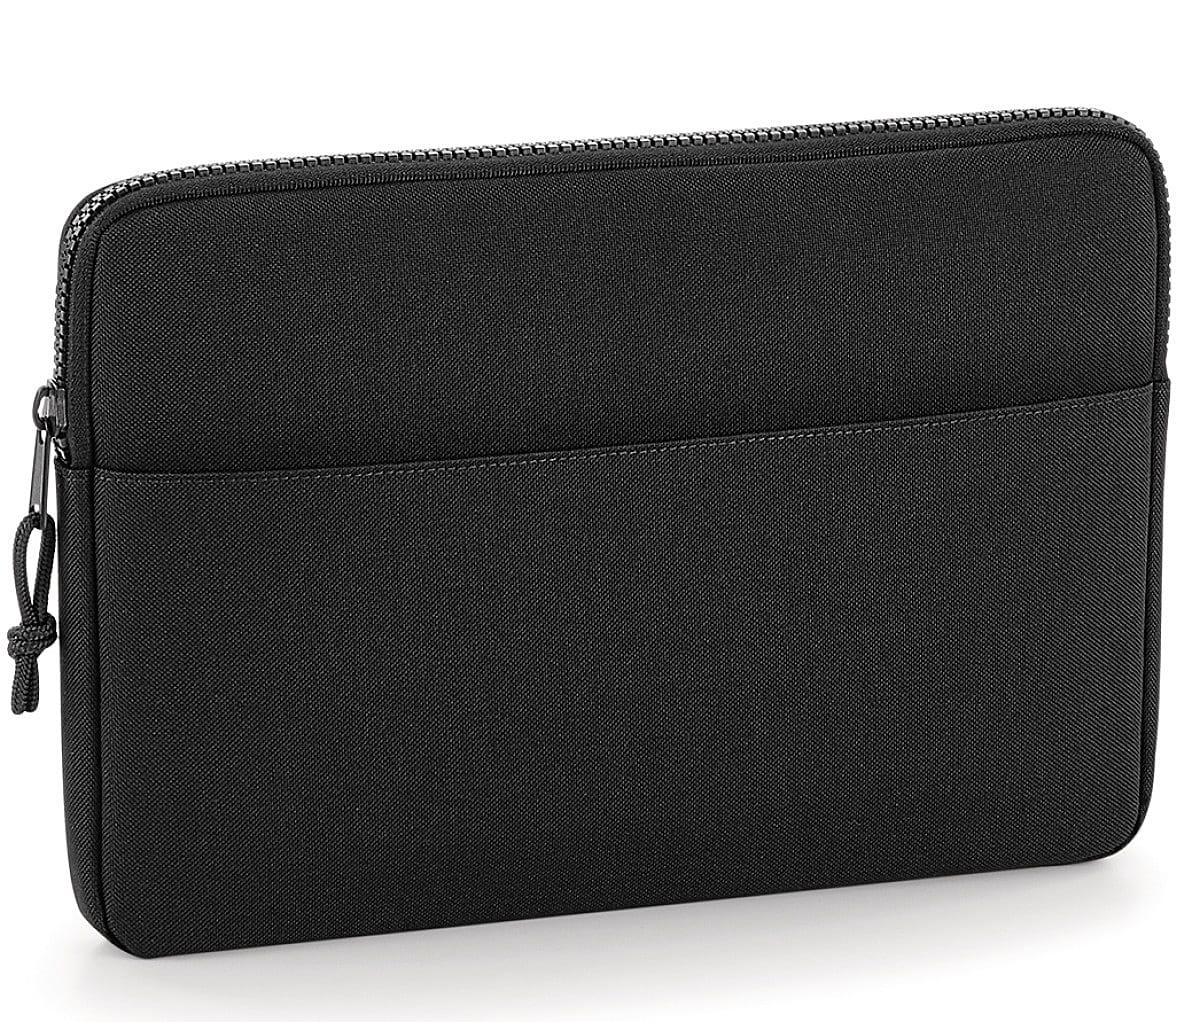 "Bagbase Essential 15"" Laptop Case in Black (Product Code: BG68)"